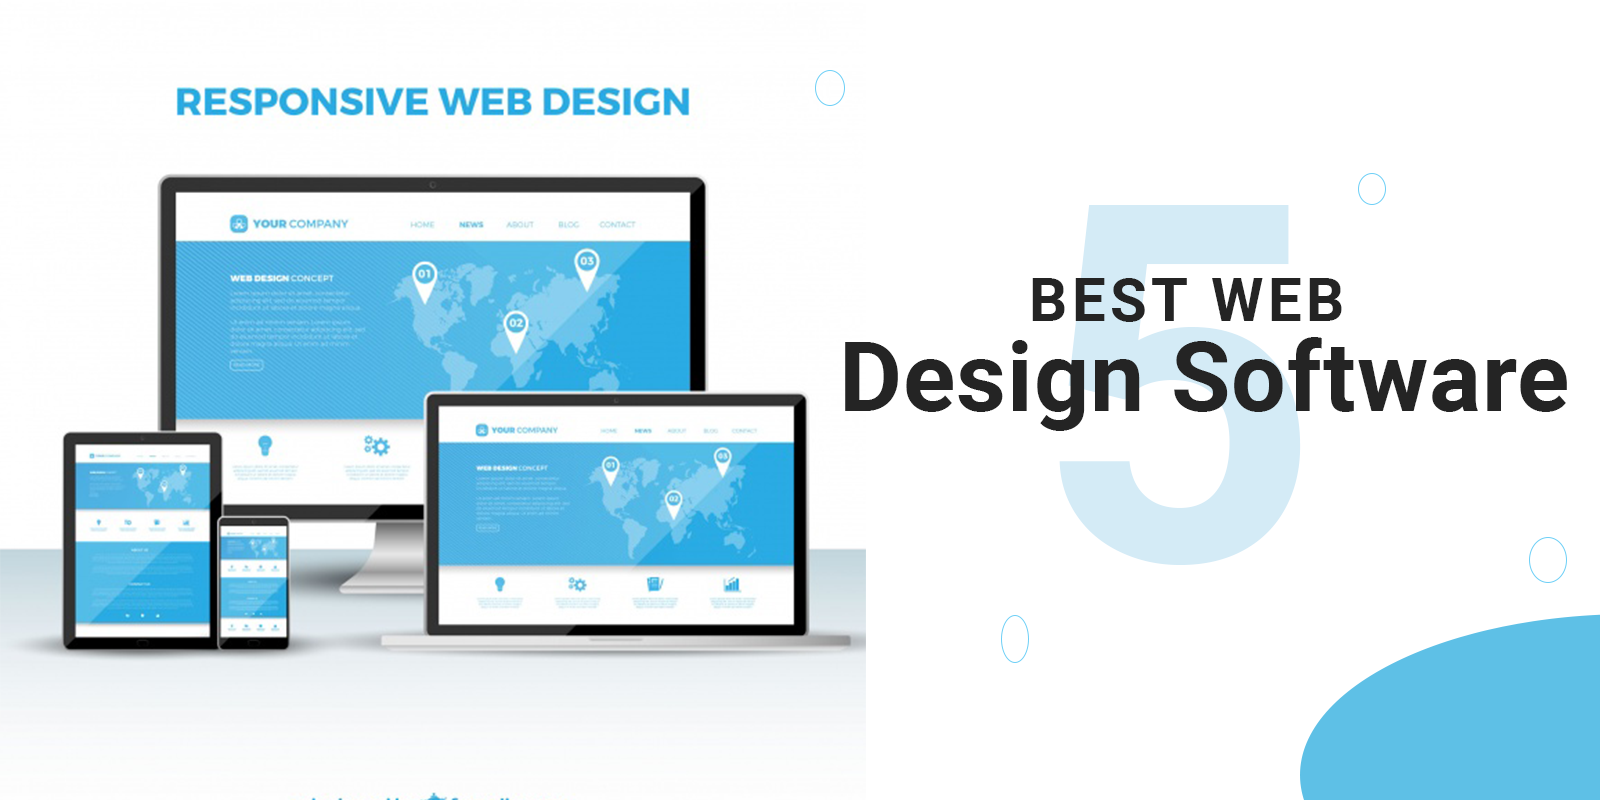 Make use of professional AIA website design forever